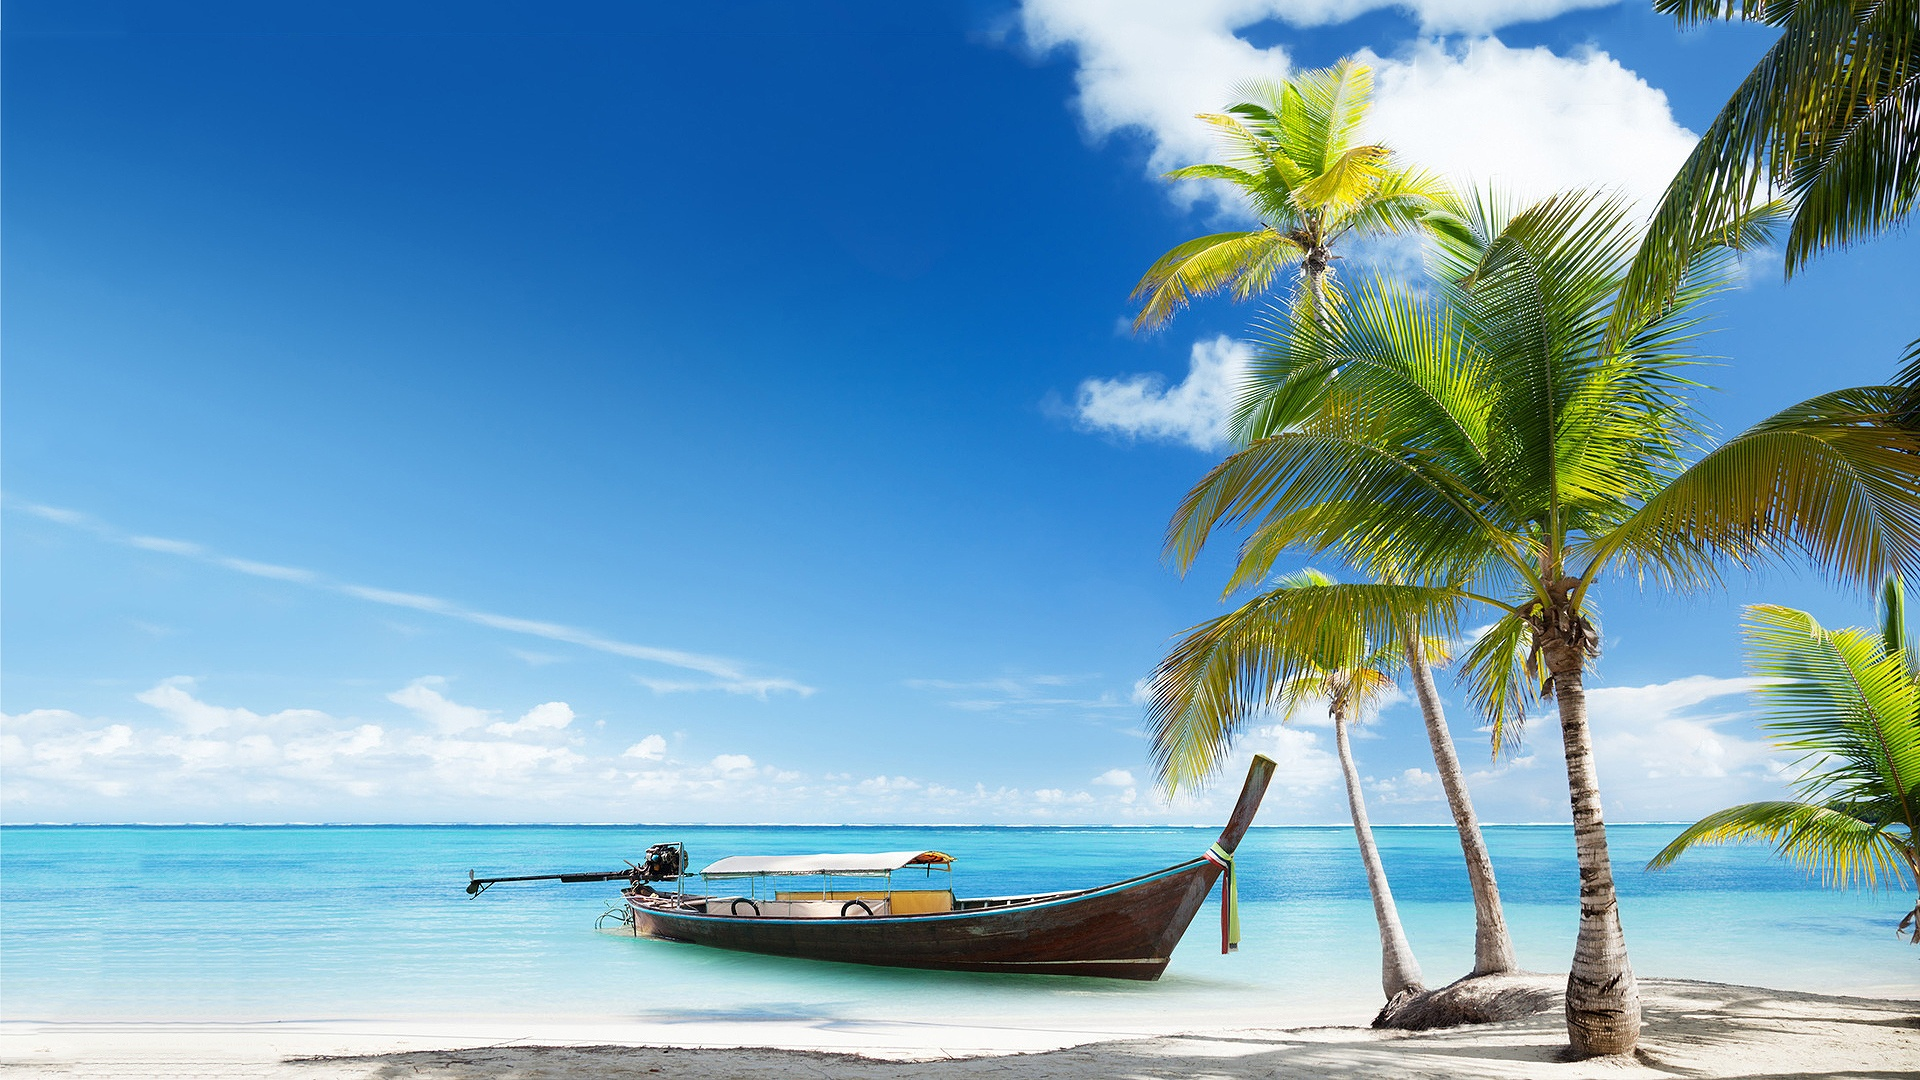 Hd wallpaper beach - 1920x1080 Hd Wallpapers Beach